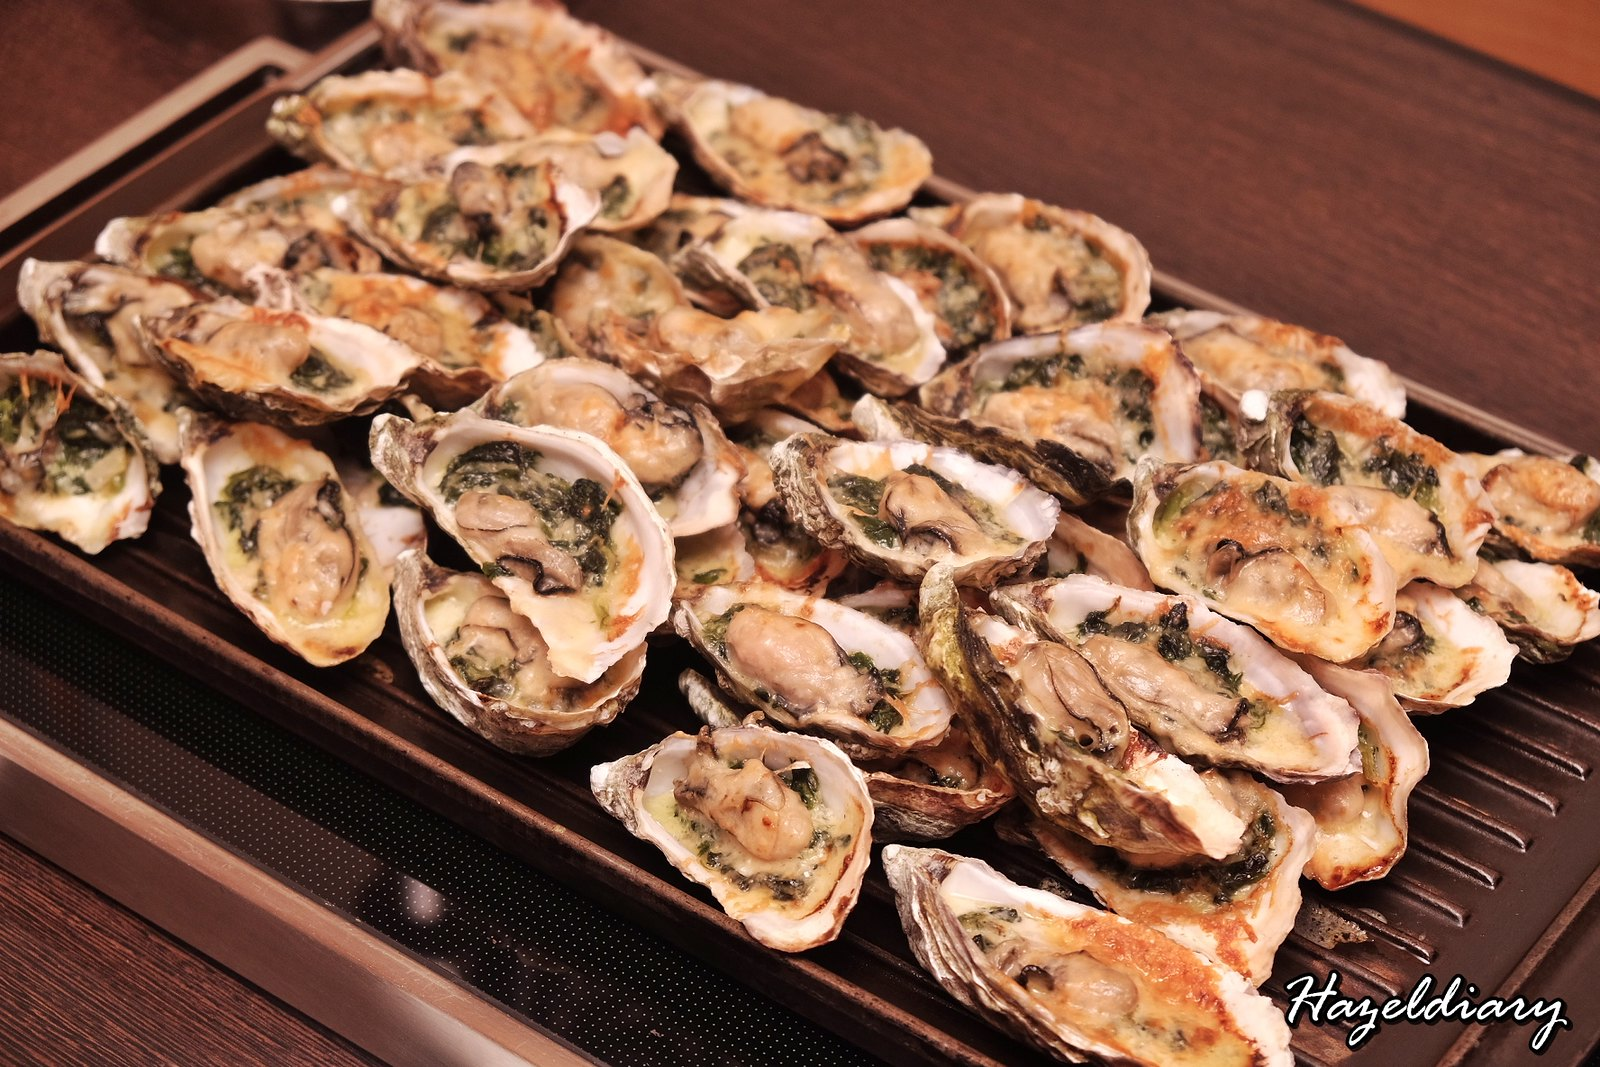 Singapore Marriott Tang Hotel-Christmas 2018-Oysters